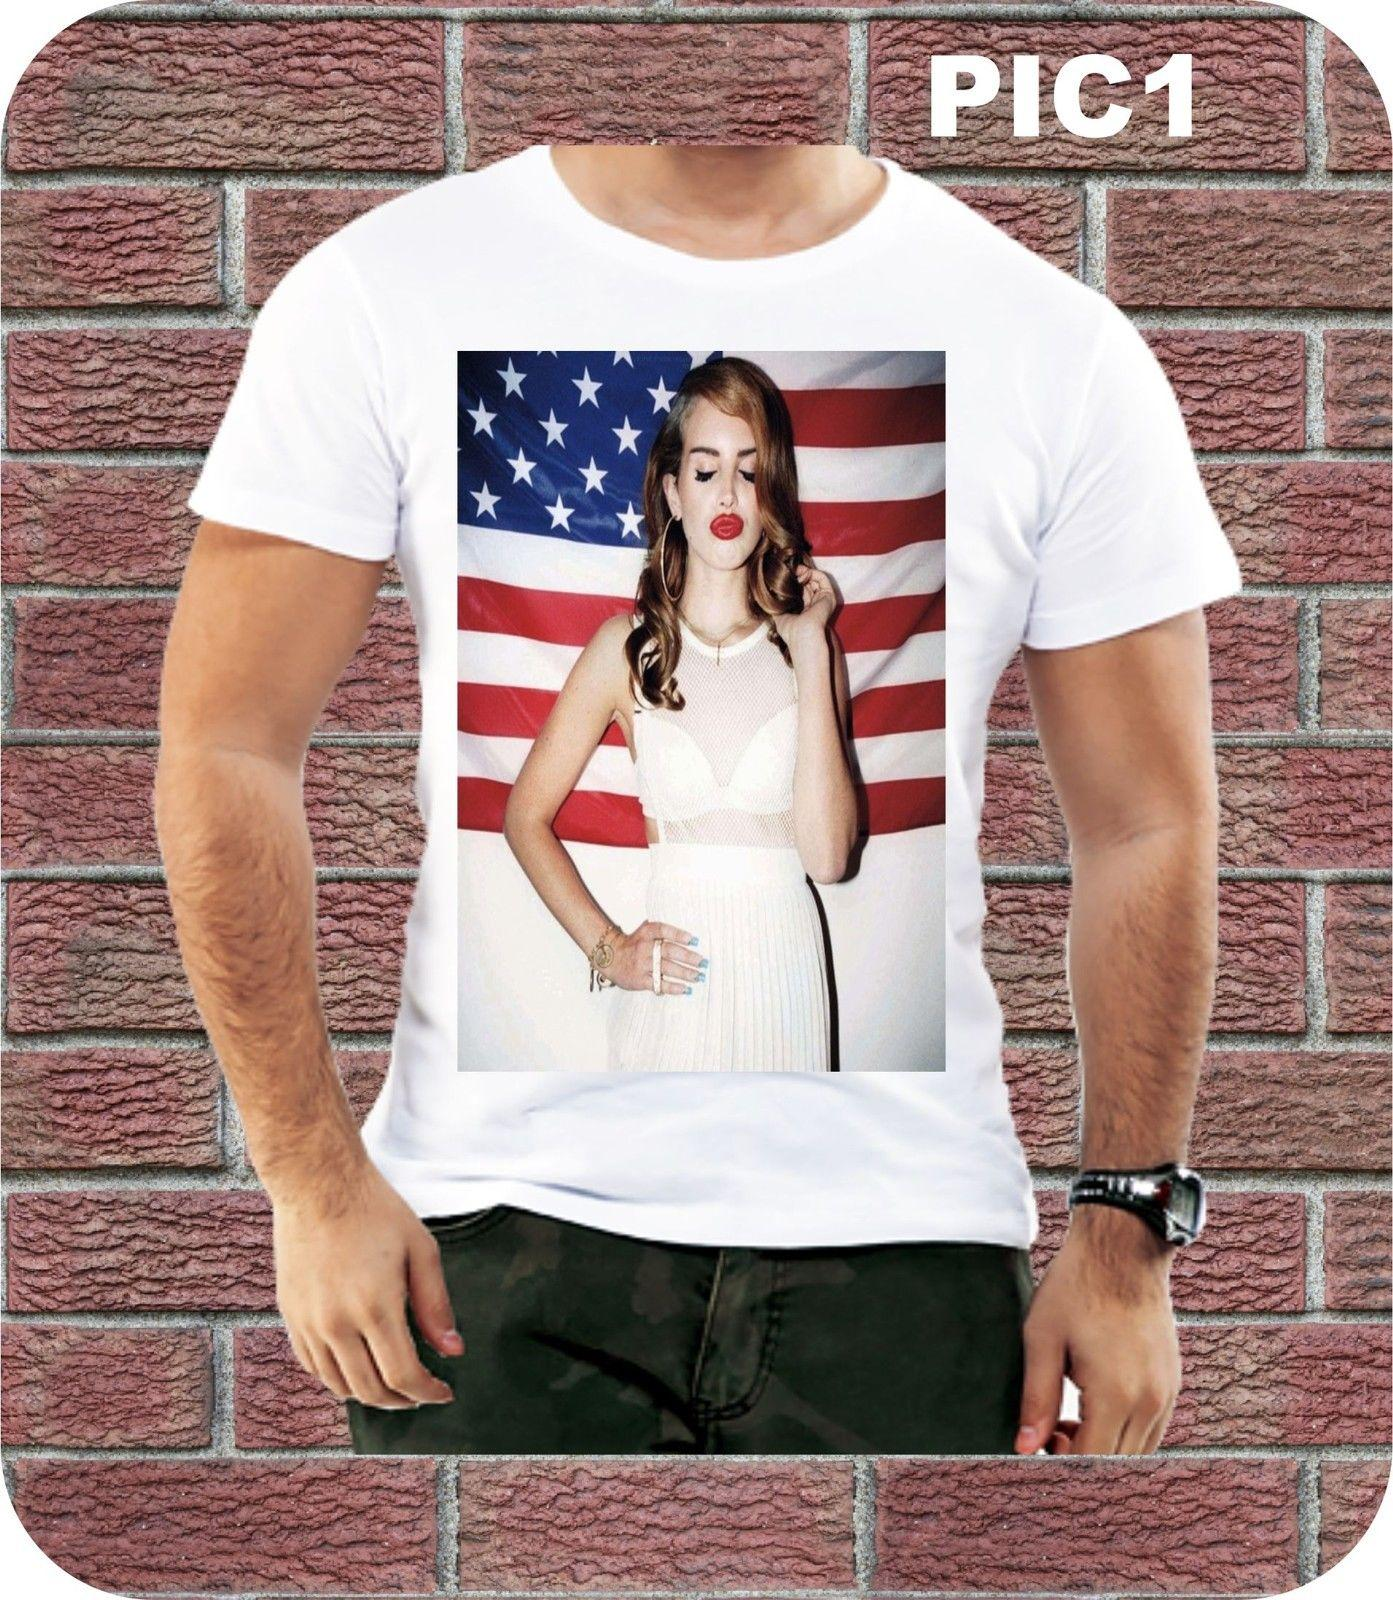 Lana Del Rey American Flag Men T Shirt Summer Design Present Music Birthday Gift Cool Casual Pride T Shirt Men Unisex New Funny T Shirt Prints Funky T Shirt Designs From Purezony